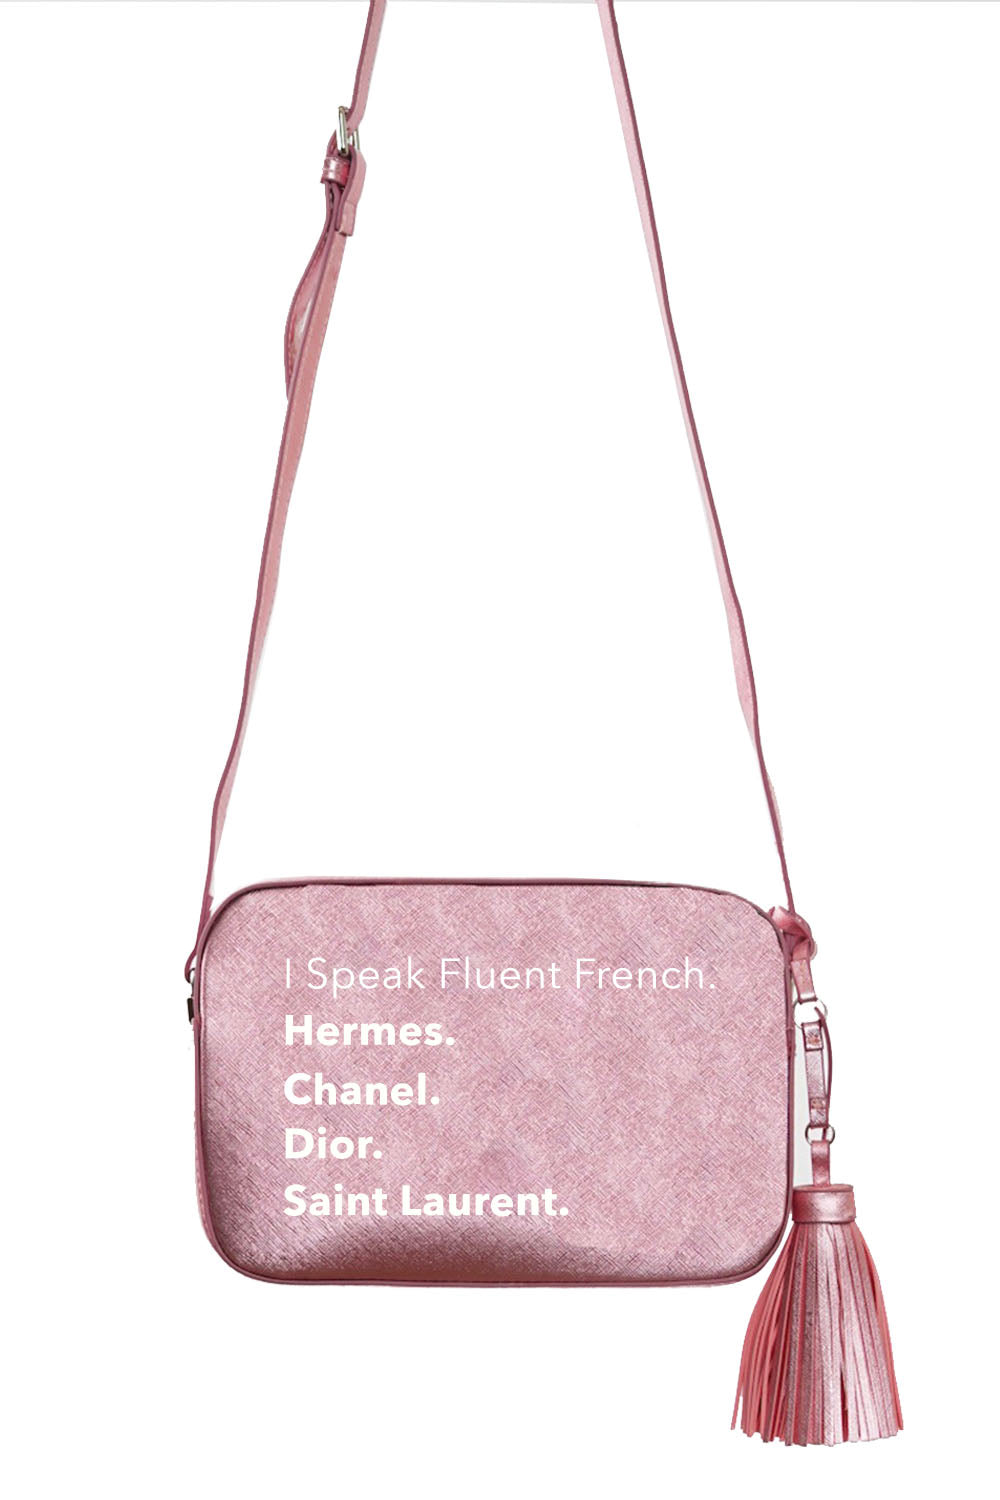 VEGAN CROSSBODY BAG - Fluent French - Pink